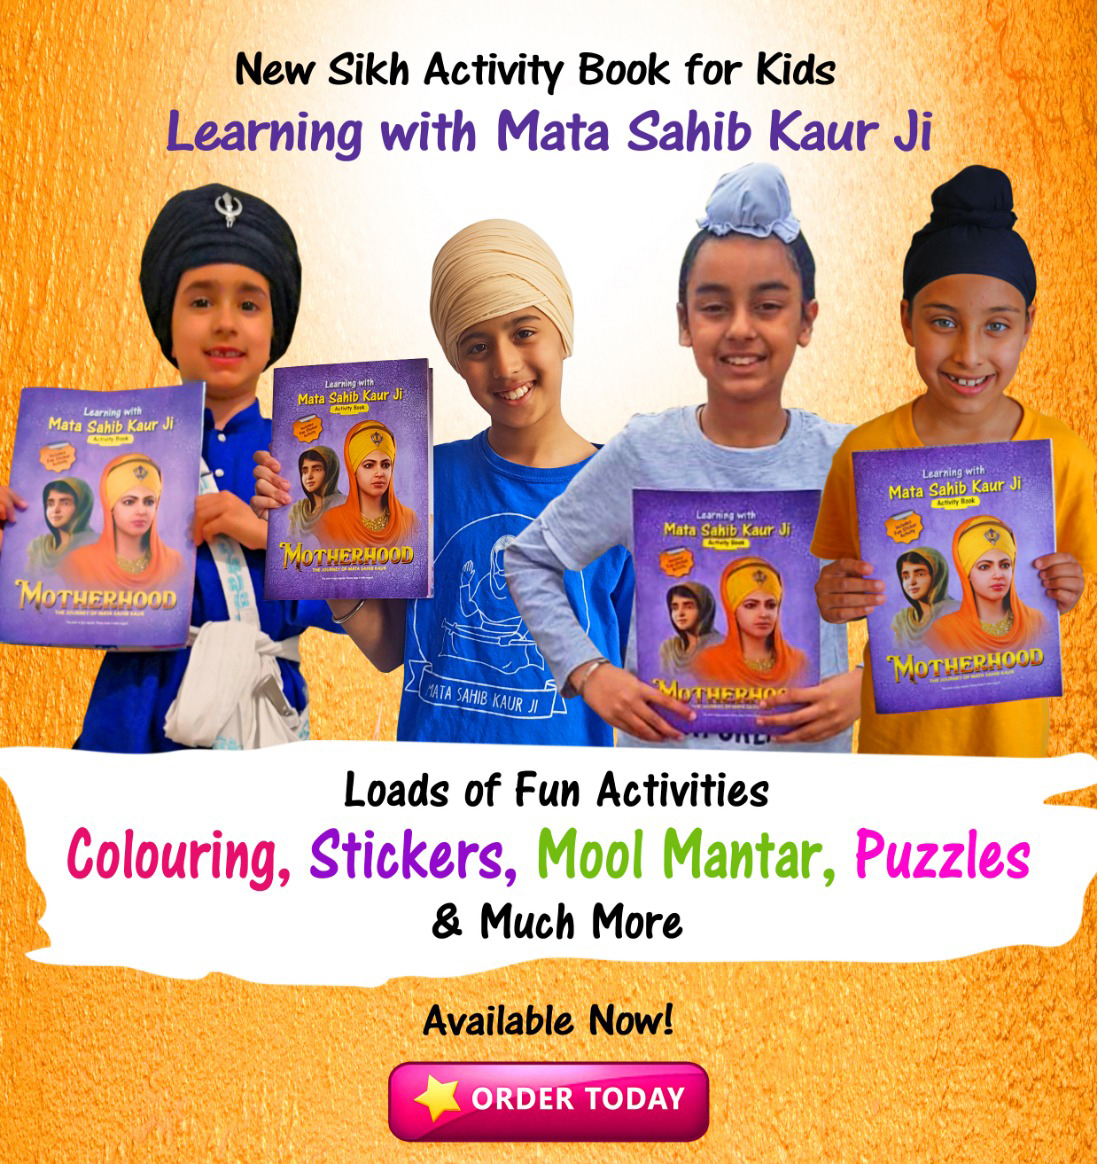 The activity book you can't afford to miss!